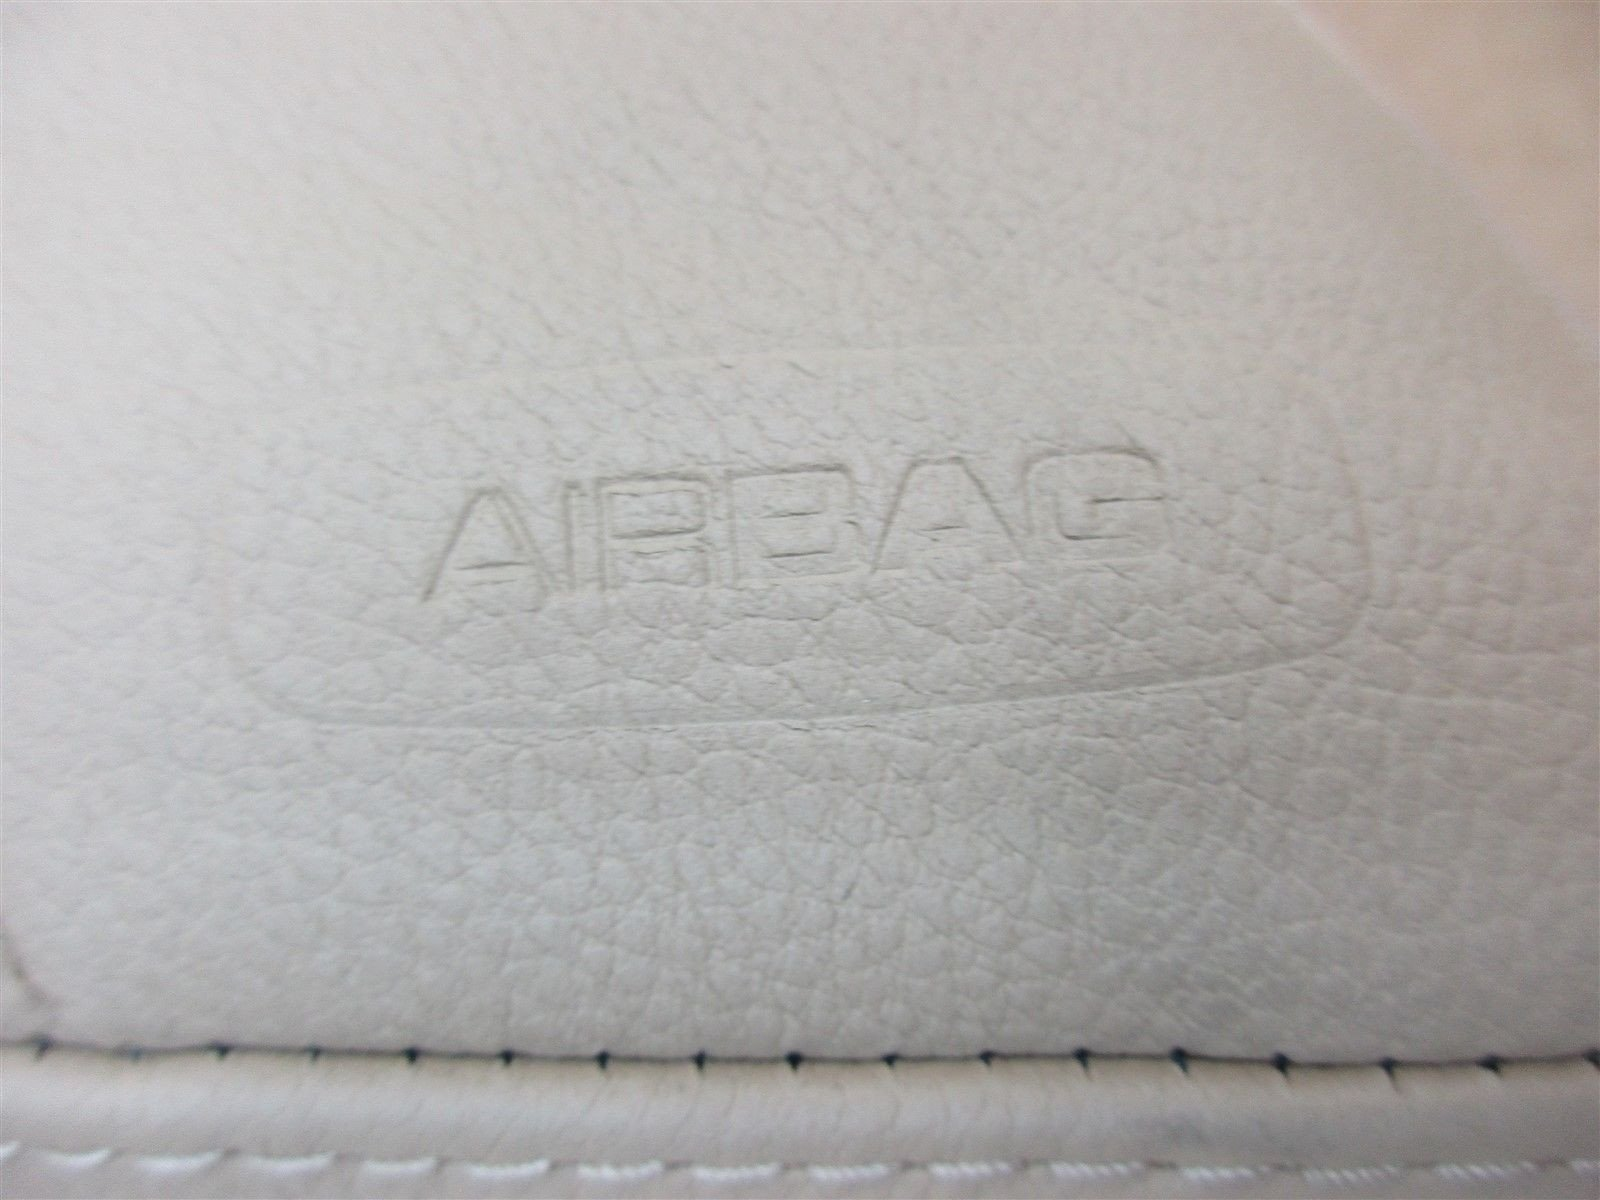 11 Panamera 4S 970 Porsche L REAR SIDE SEAT AIR BAG 97052206131 Leather 25,050